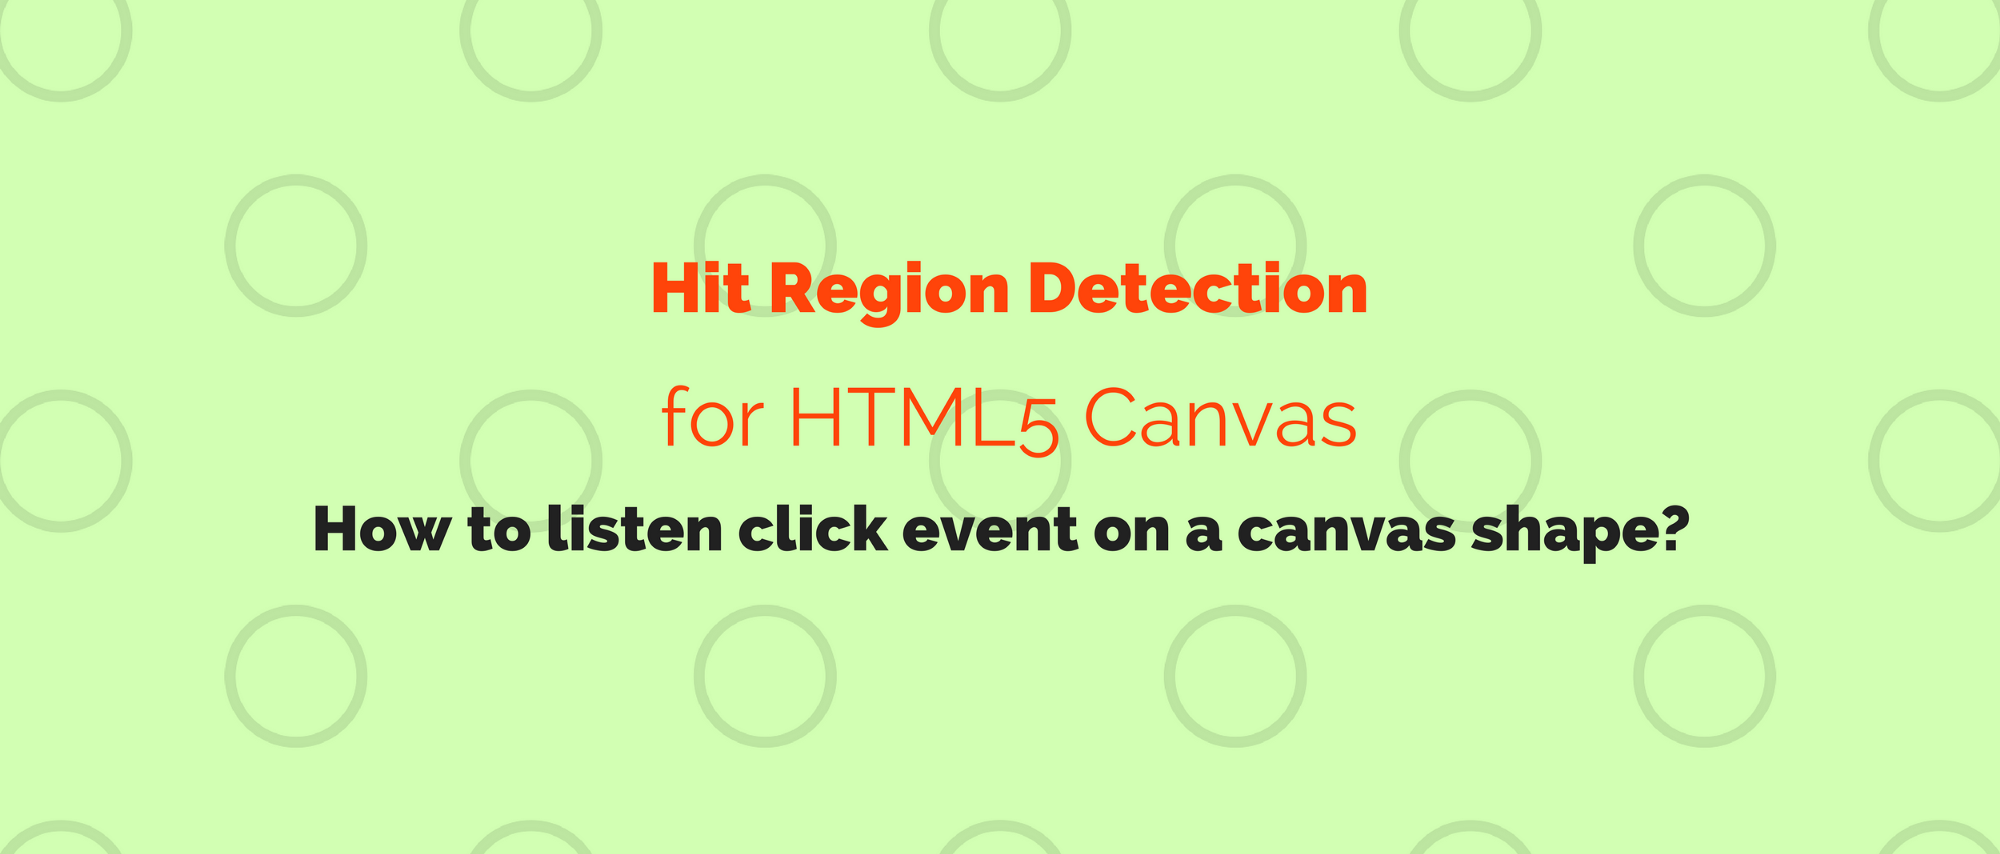 Hit Region Detection For Html5 Canvas And How To Listen To Click